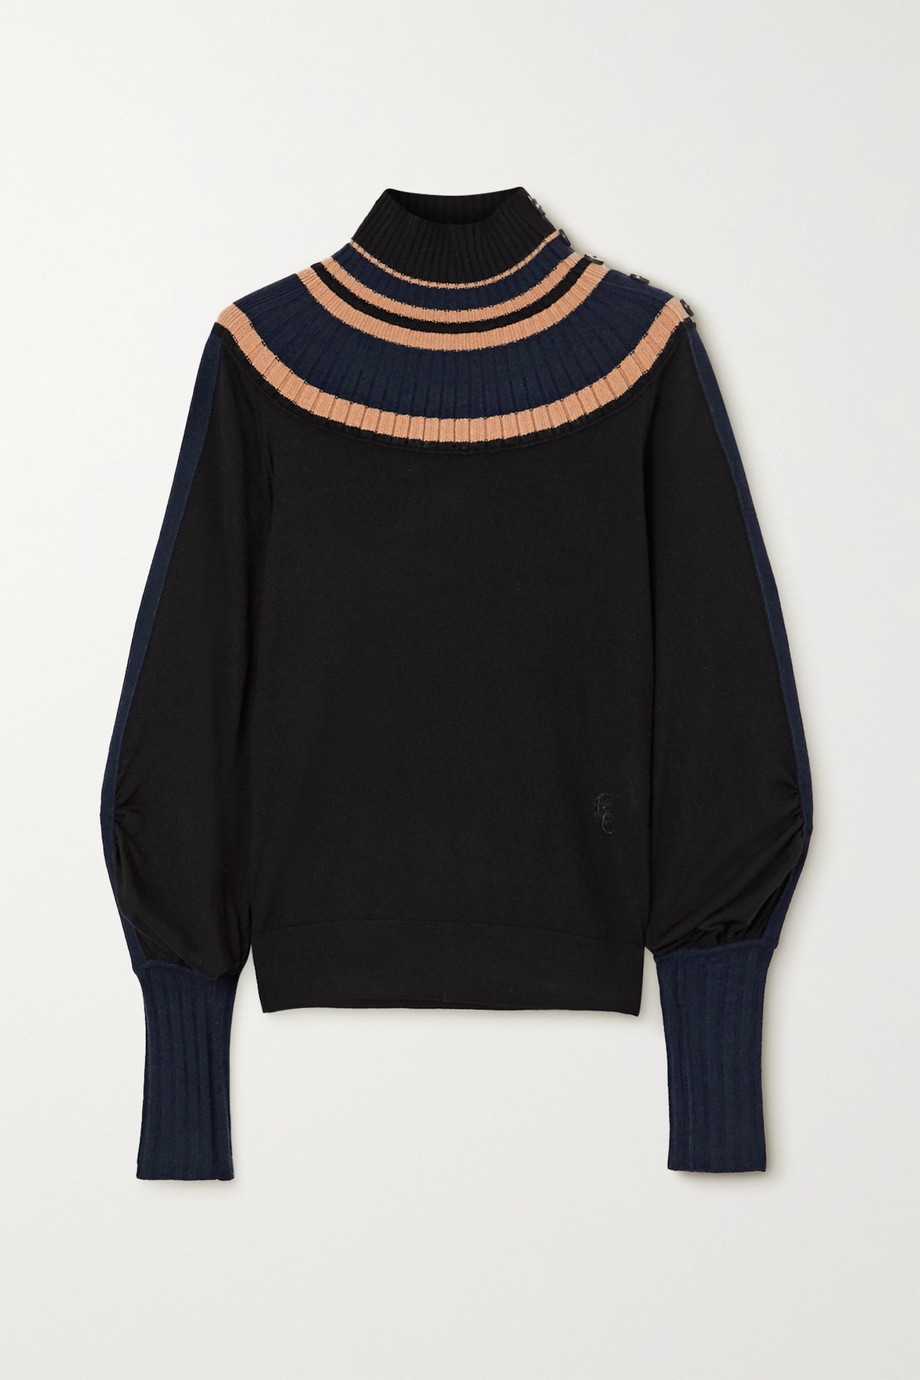 CHLOÉ Striped ribbed wool turtleneck sweater